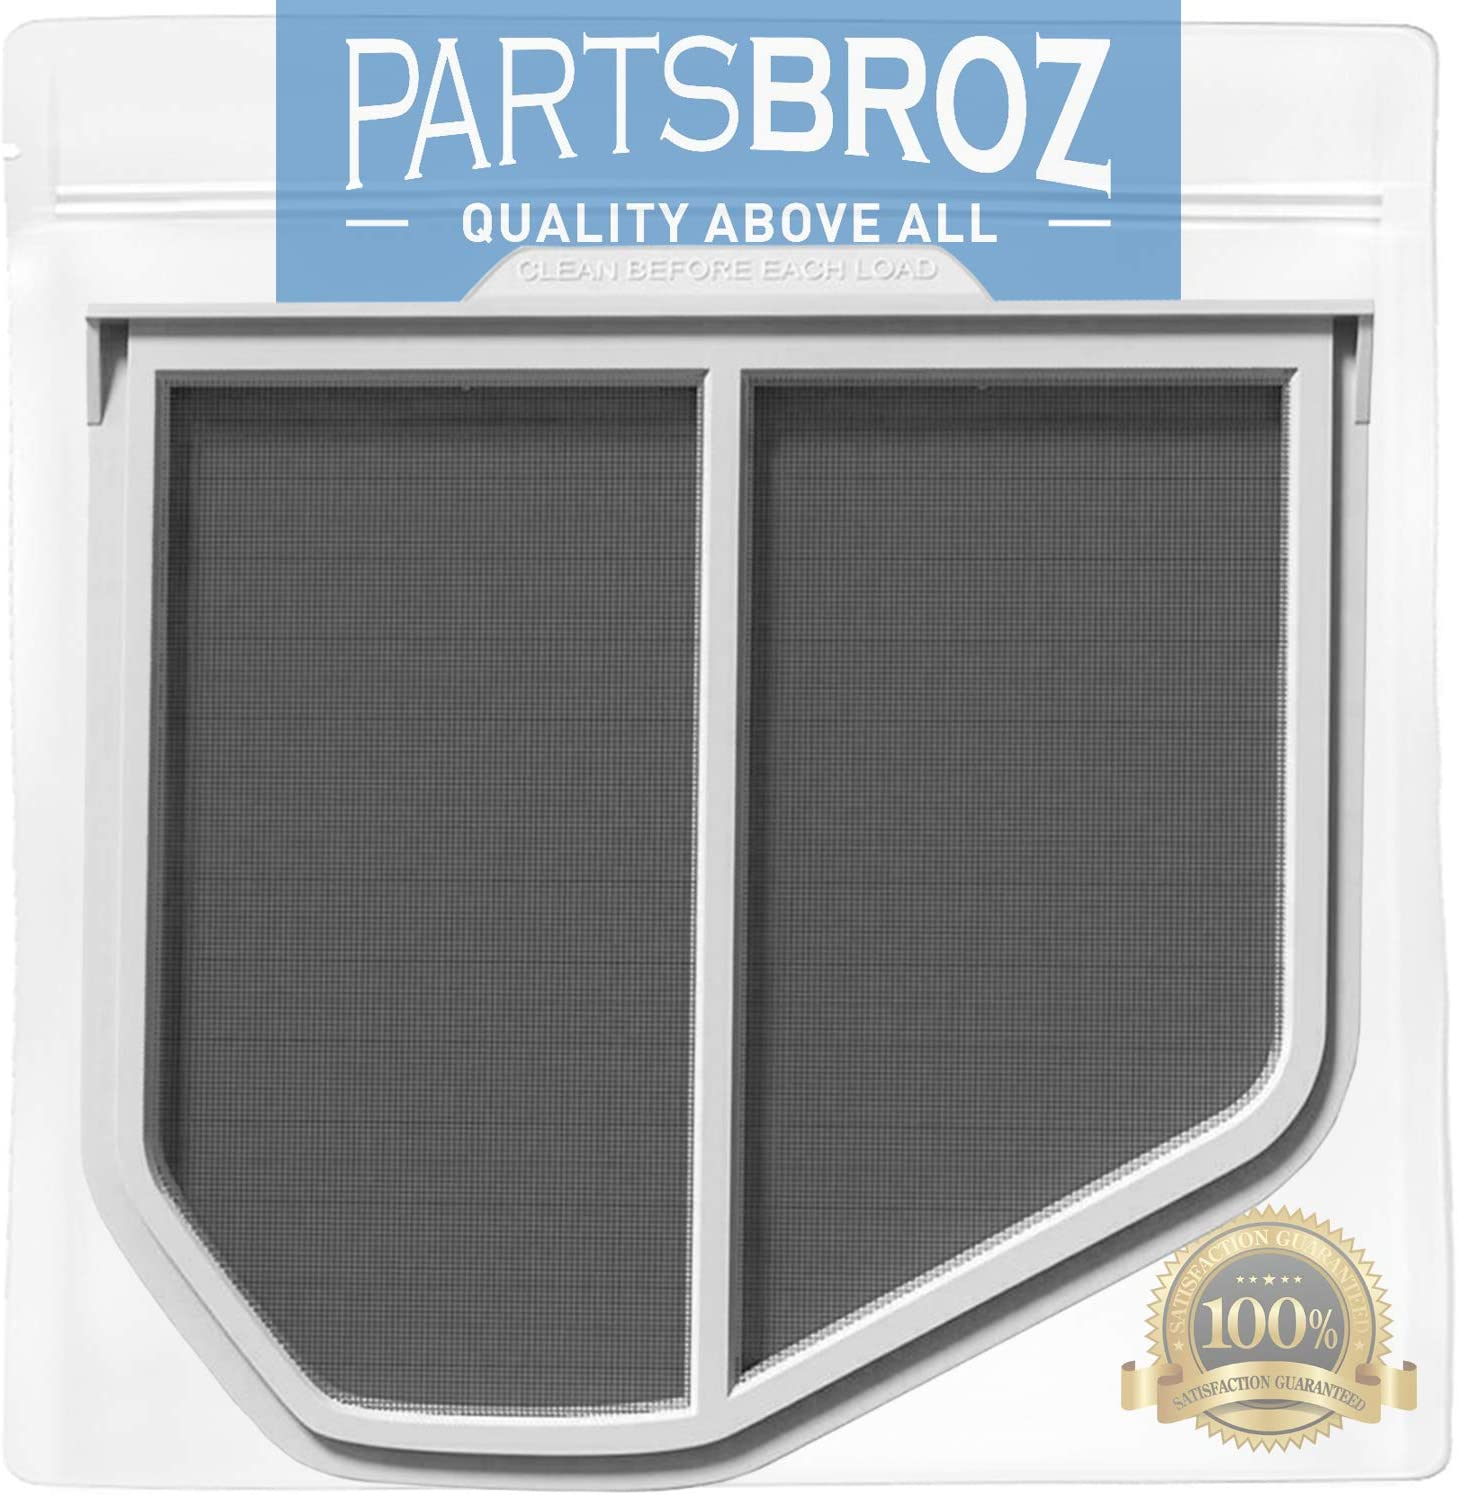 W10120998 Dryer Lint Filter for Whirlpool Dryers by PartsBroz - Replaces AP3967919, 1206293, 3390721, 8066170, 8572268, AH1491676, EA1491676, PS1491676, W10049370, W10120998VP, W10178353, W10596627